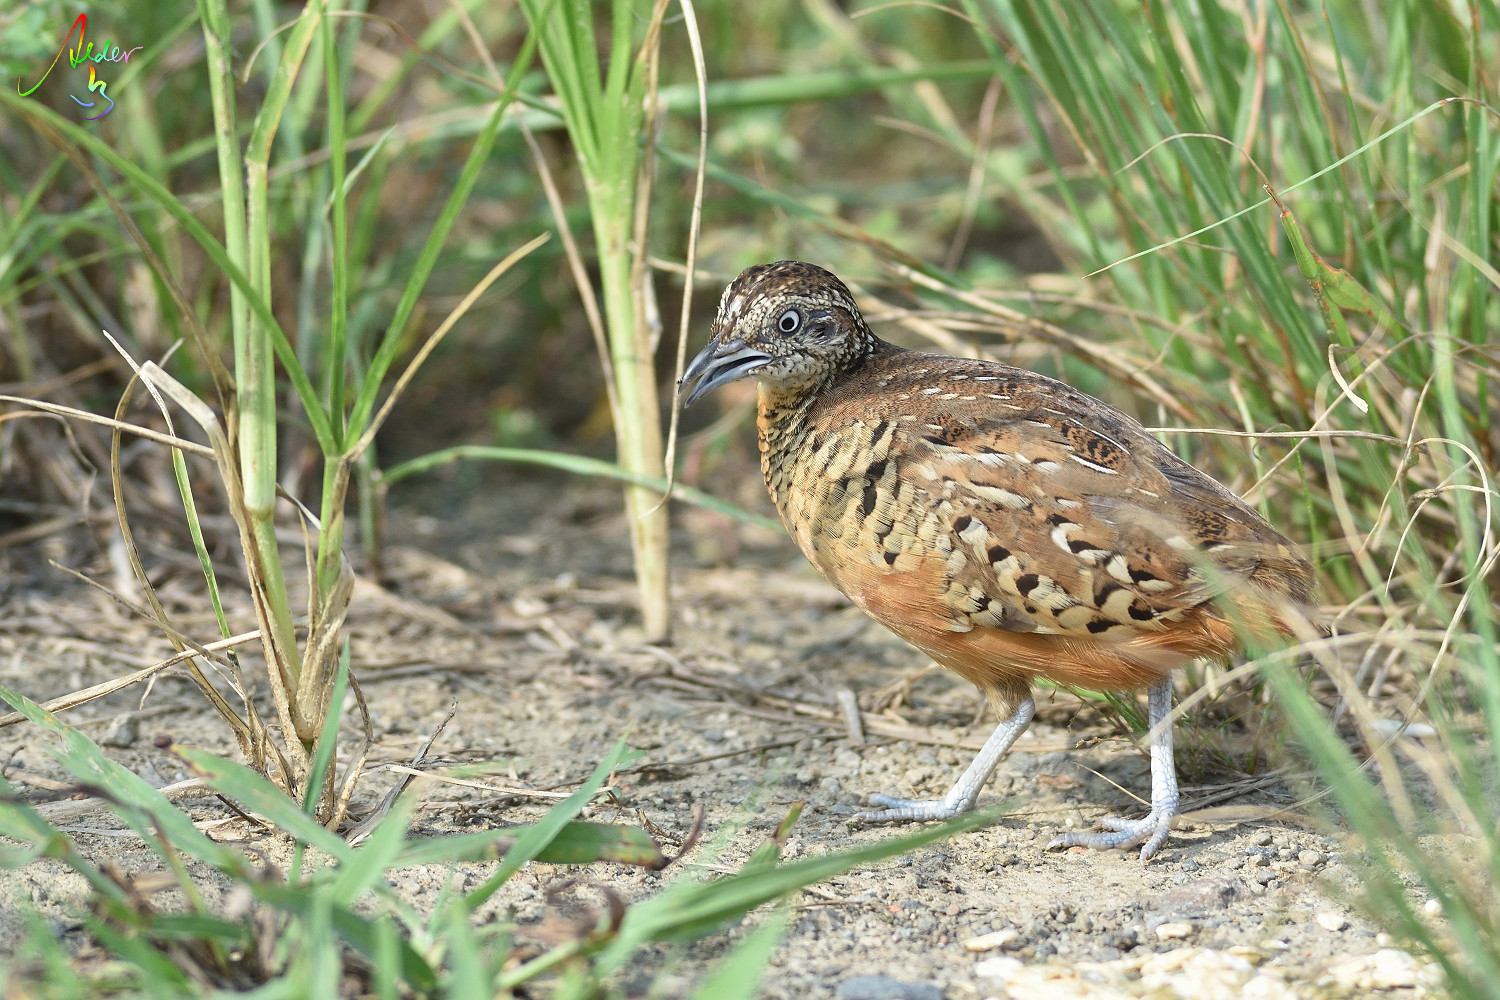 Barred_Butonquail_9455